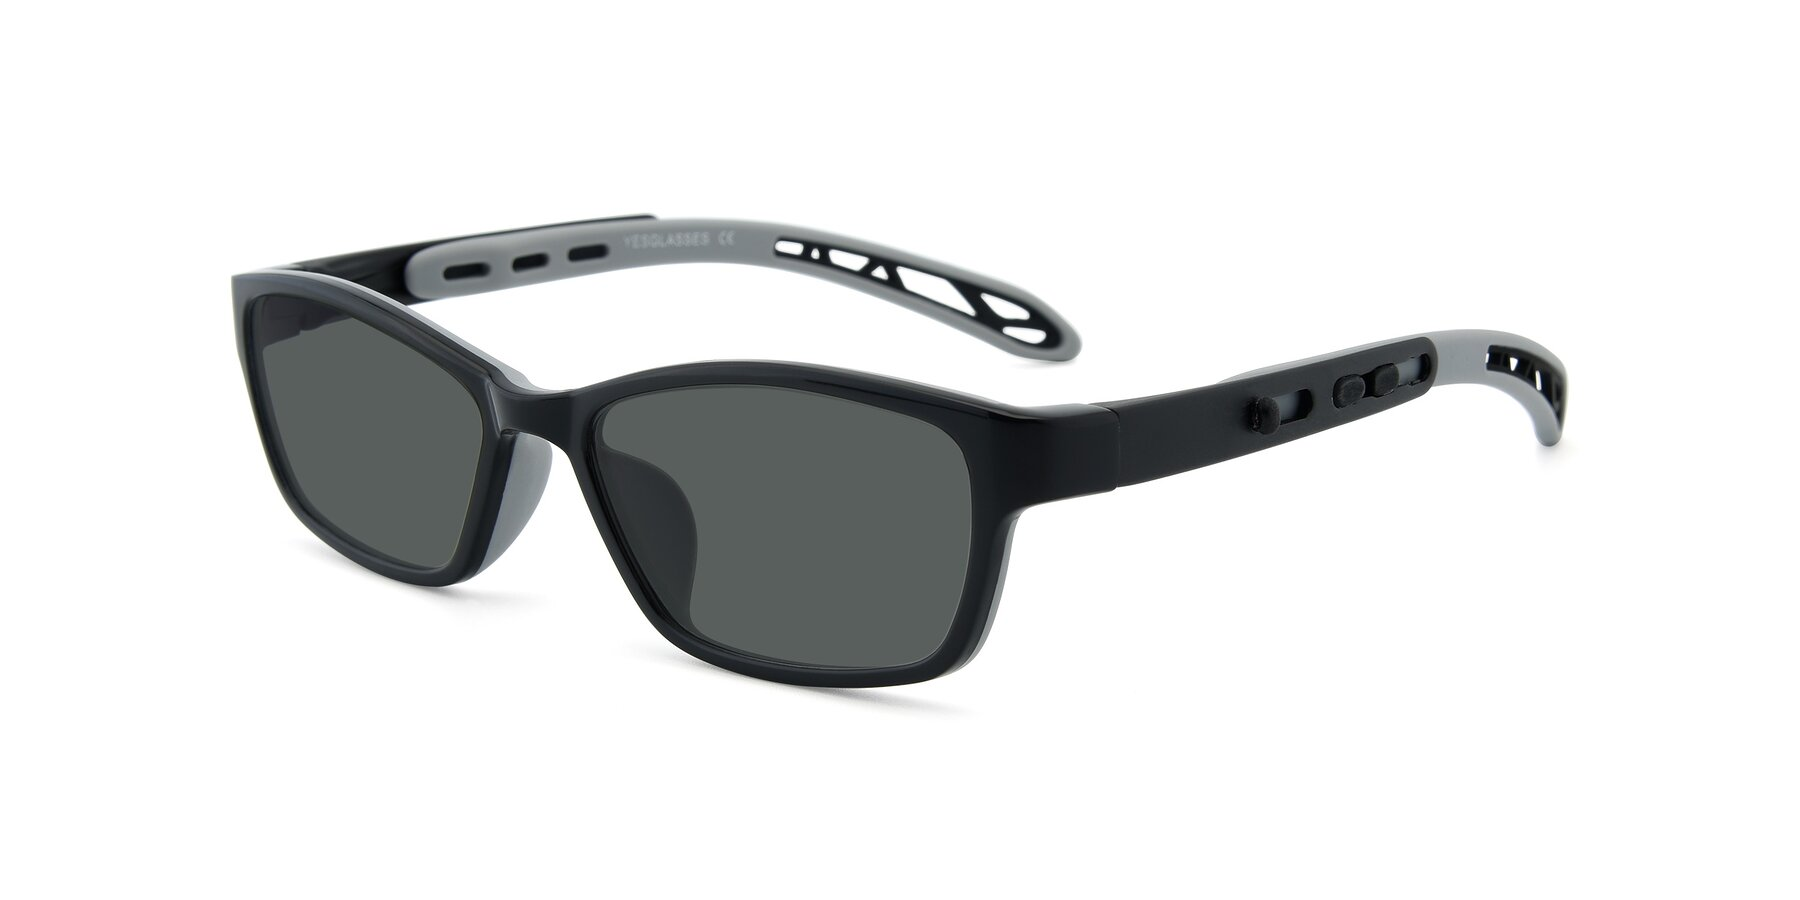 Angle of 1075 in Black-Gray with Gray Polarized Lenses